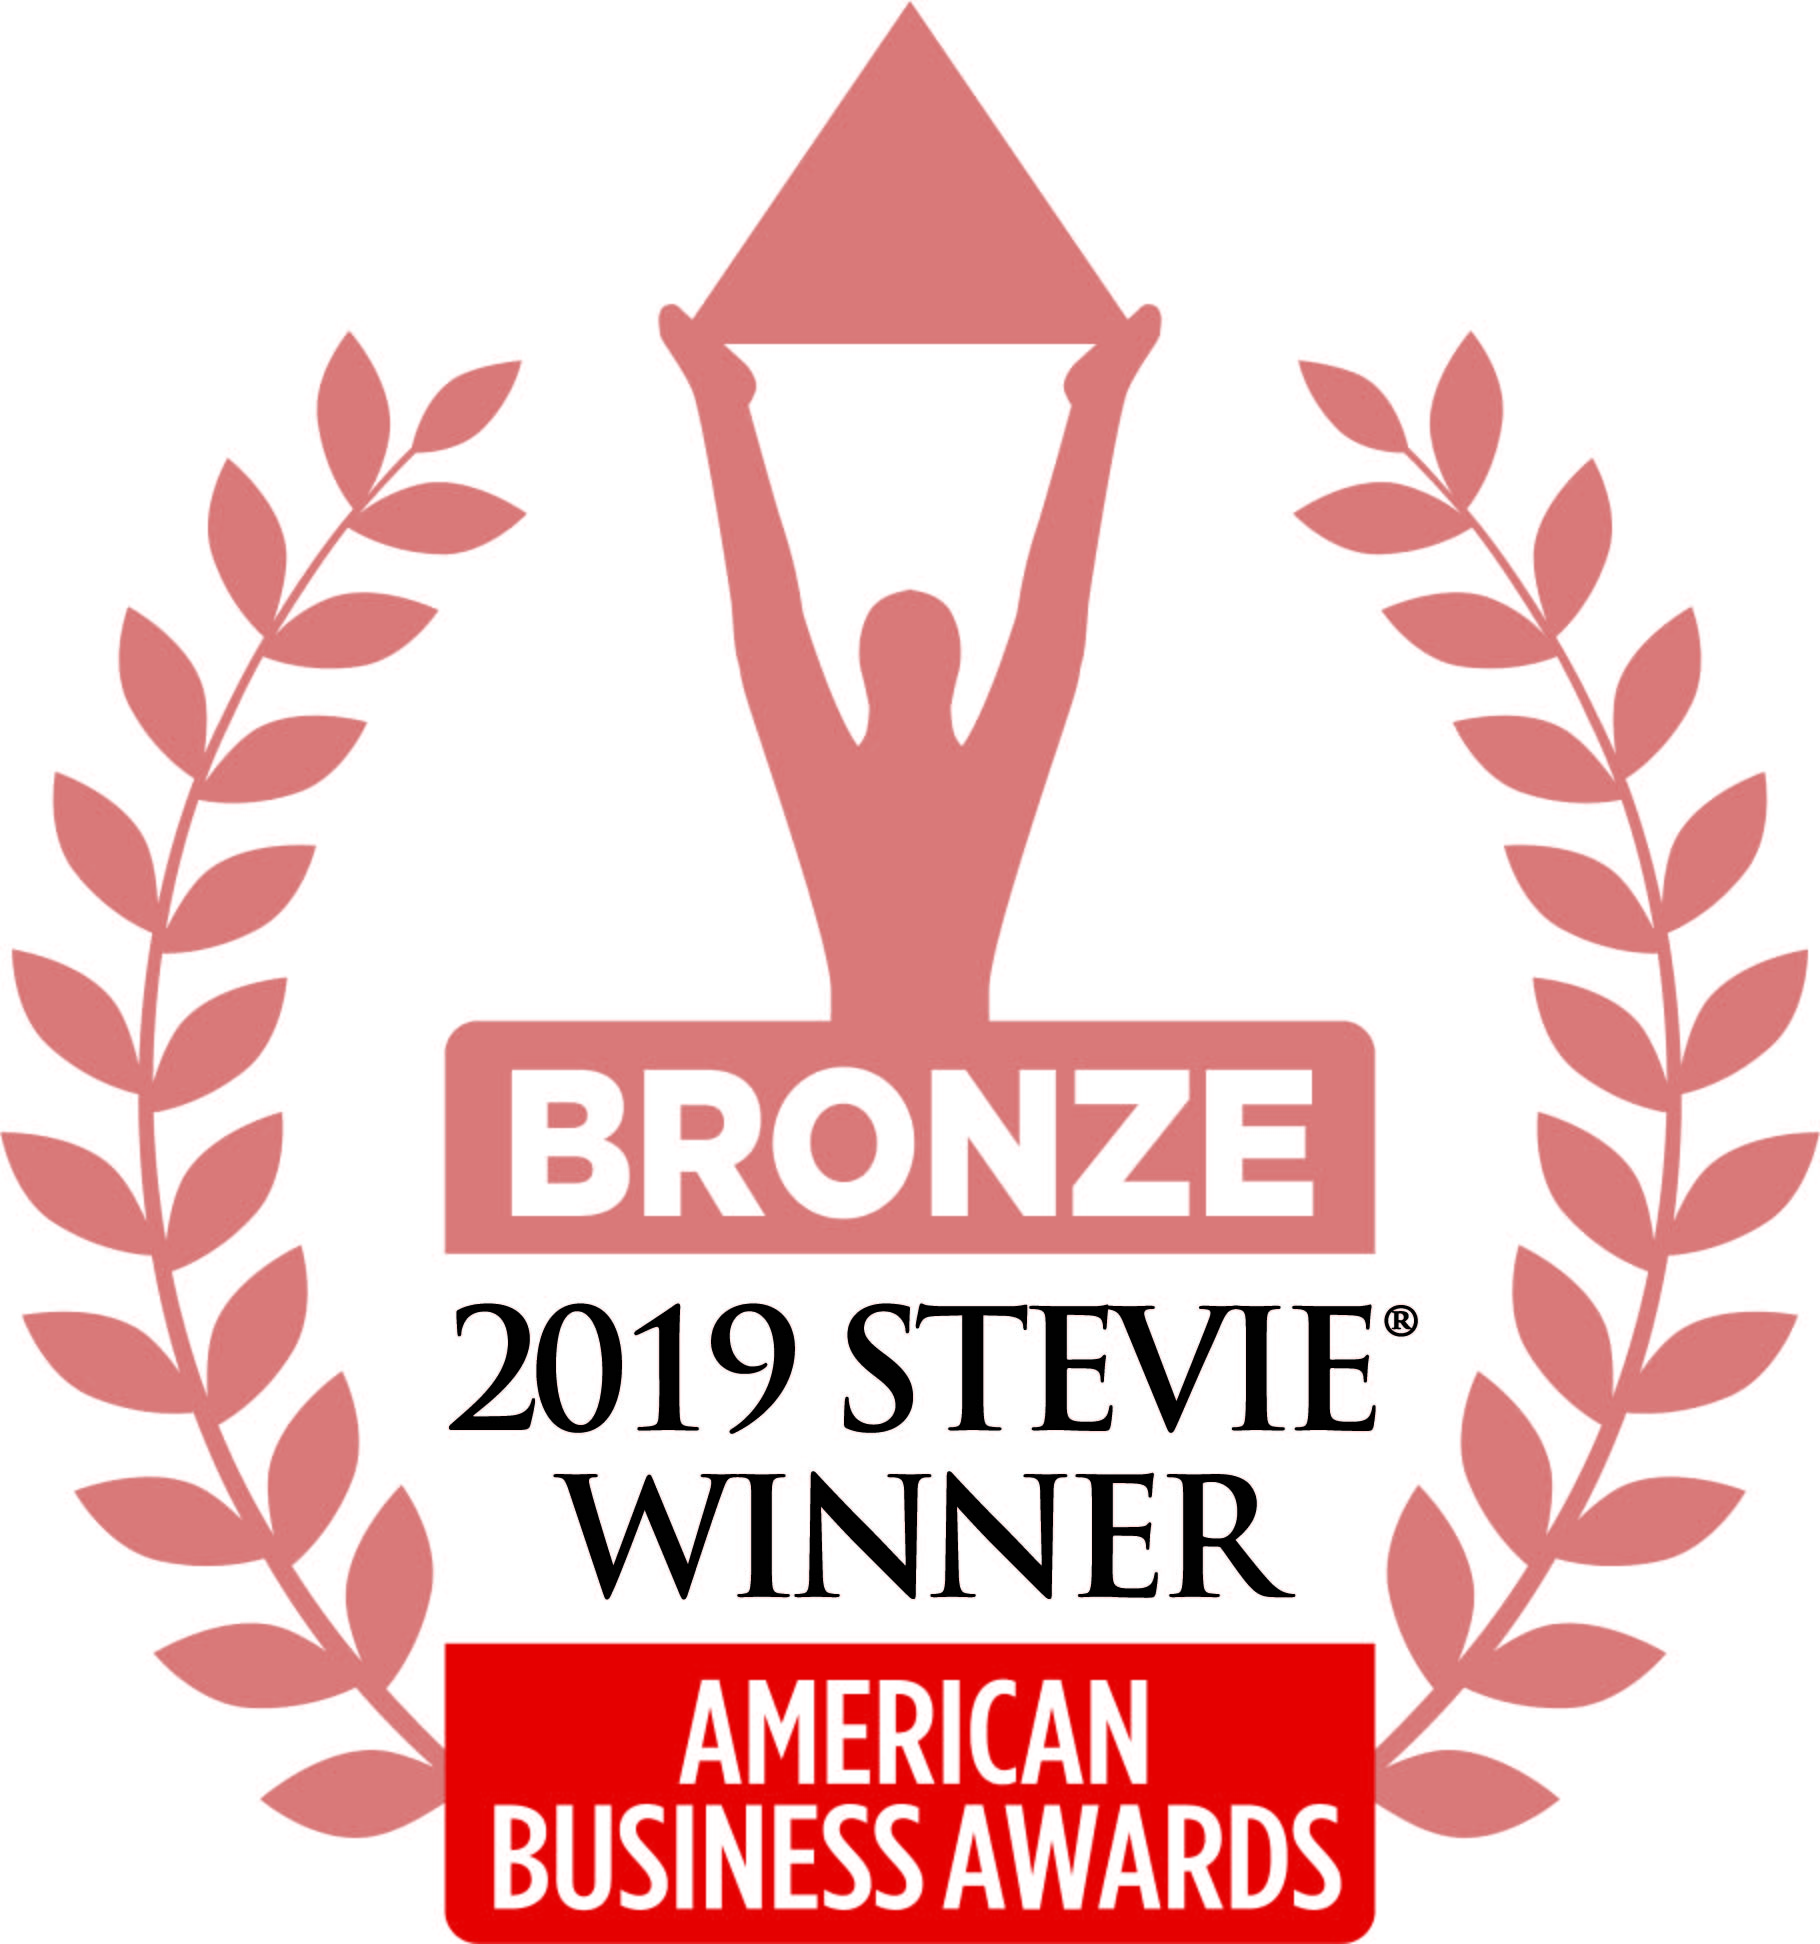 Acuant Wins Bronze in 2019 Stevie Awards